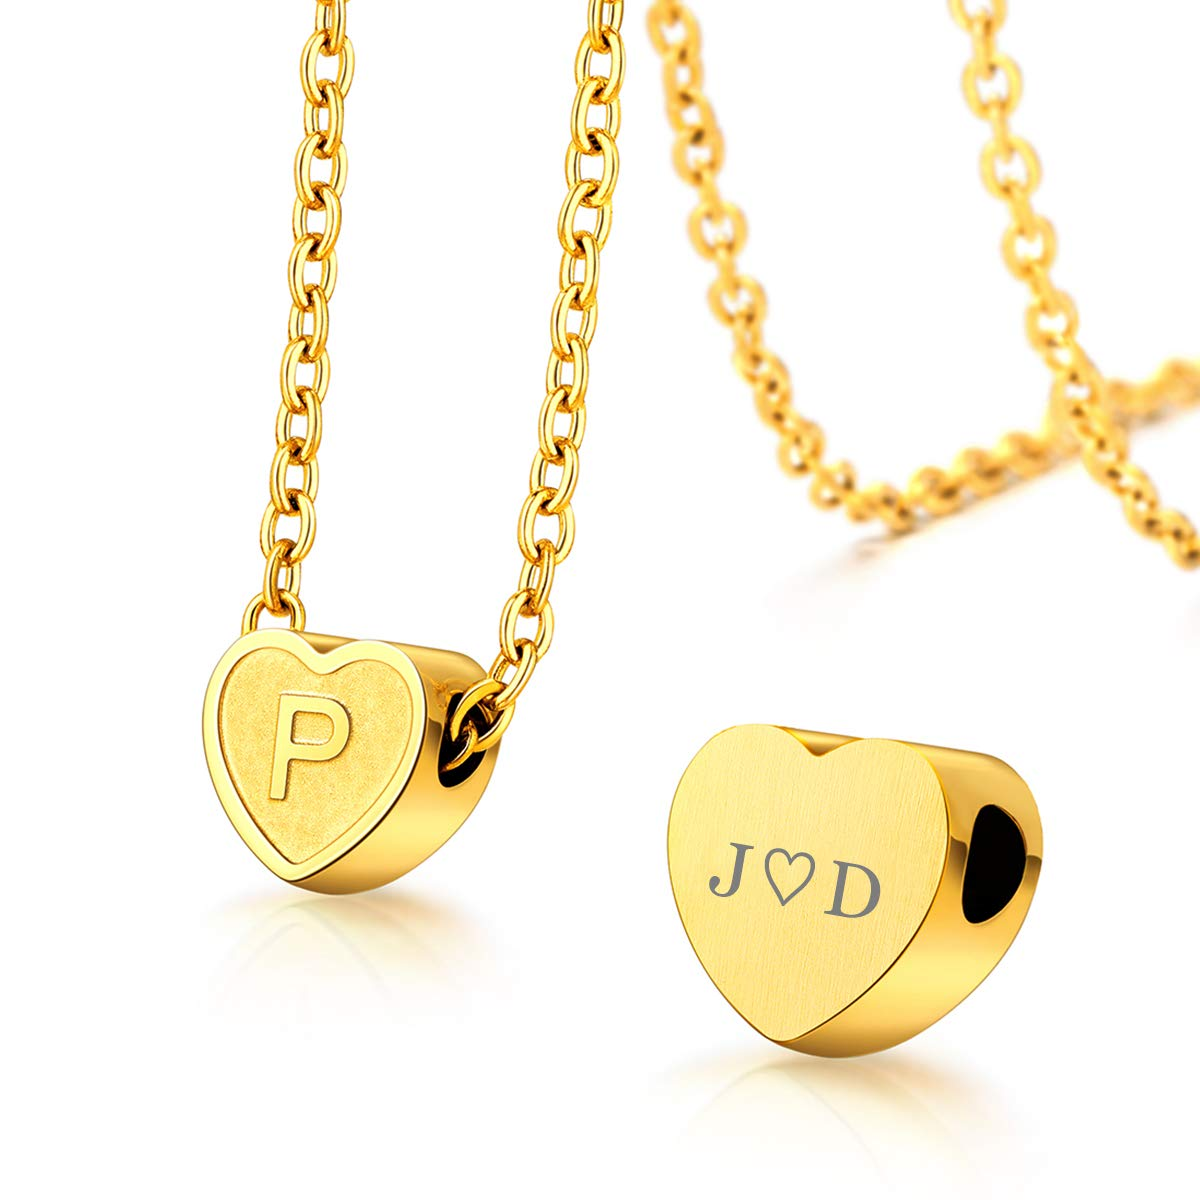 FOCALOOK Tiny Heart Initial Necklace 18K Gold Plated Stainless Steel Name Alphabet Jewelry Dainty Letter Pendant 26 A-Z Monogram Necklace Gift for Mom, with Backside Customize